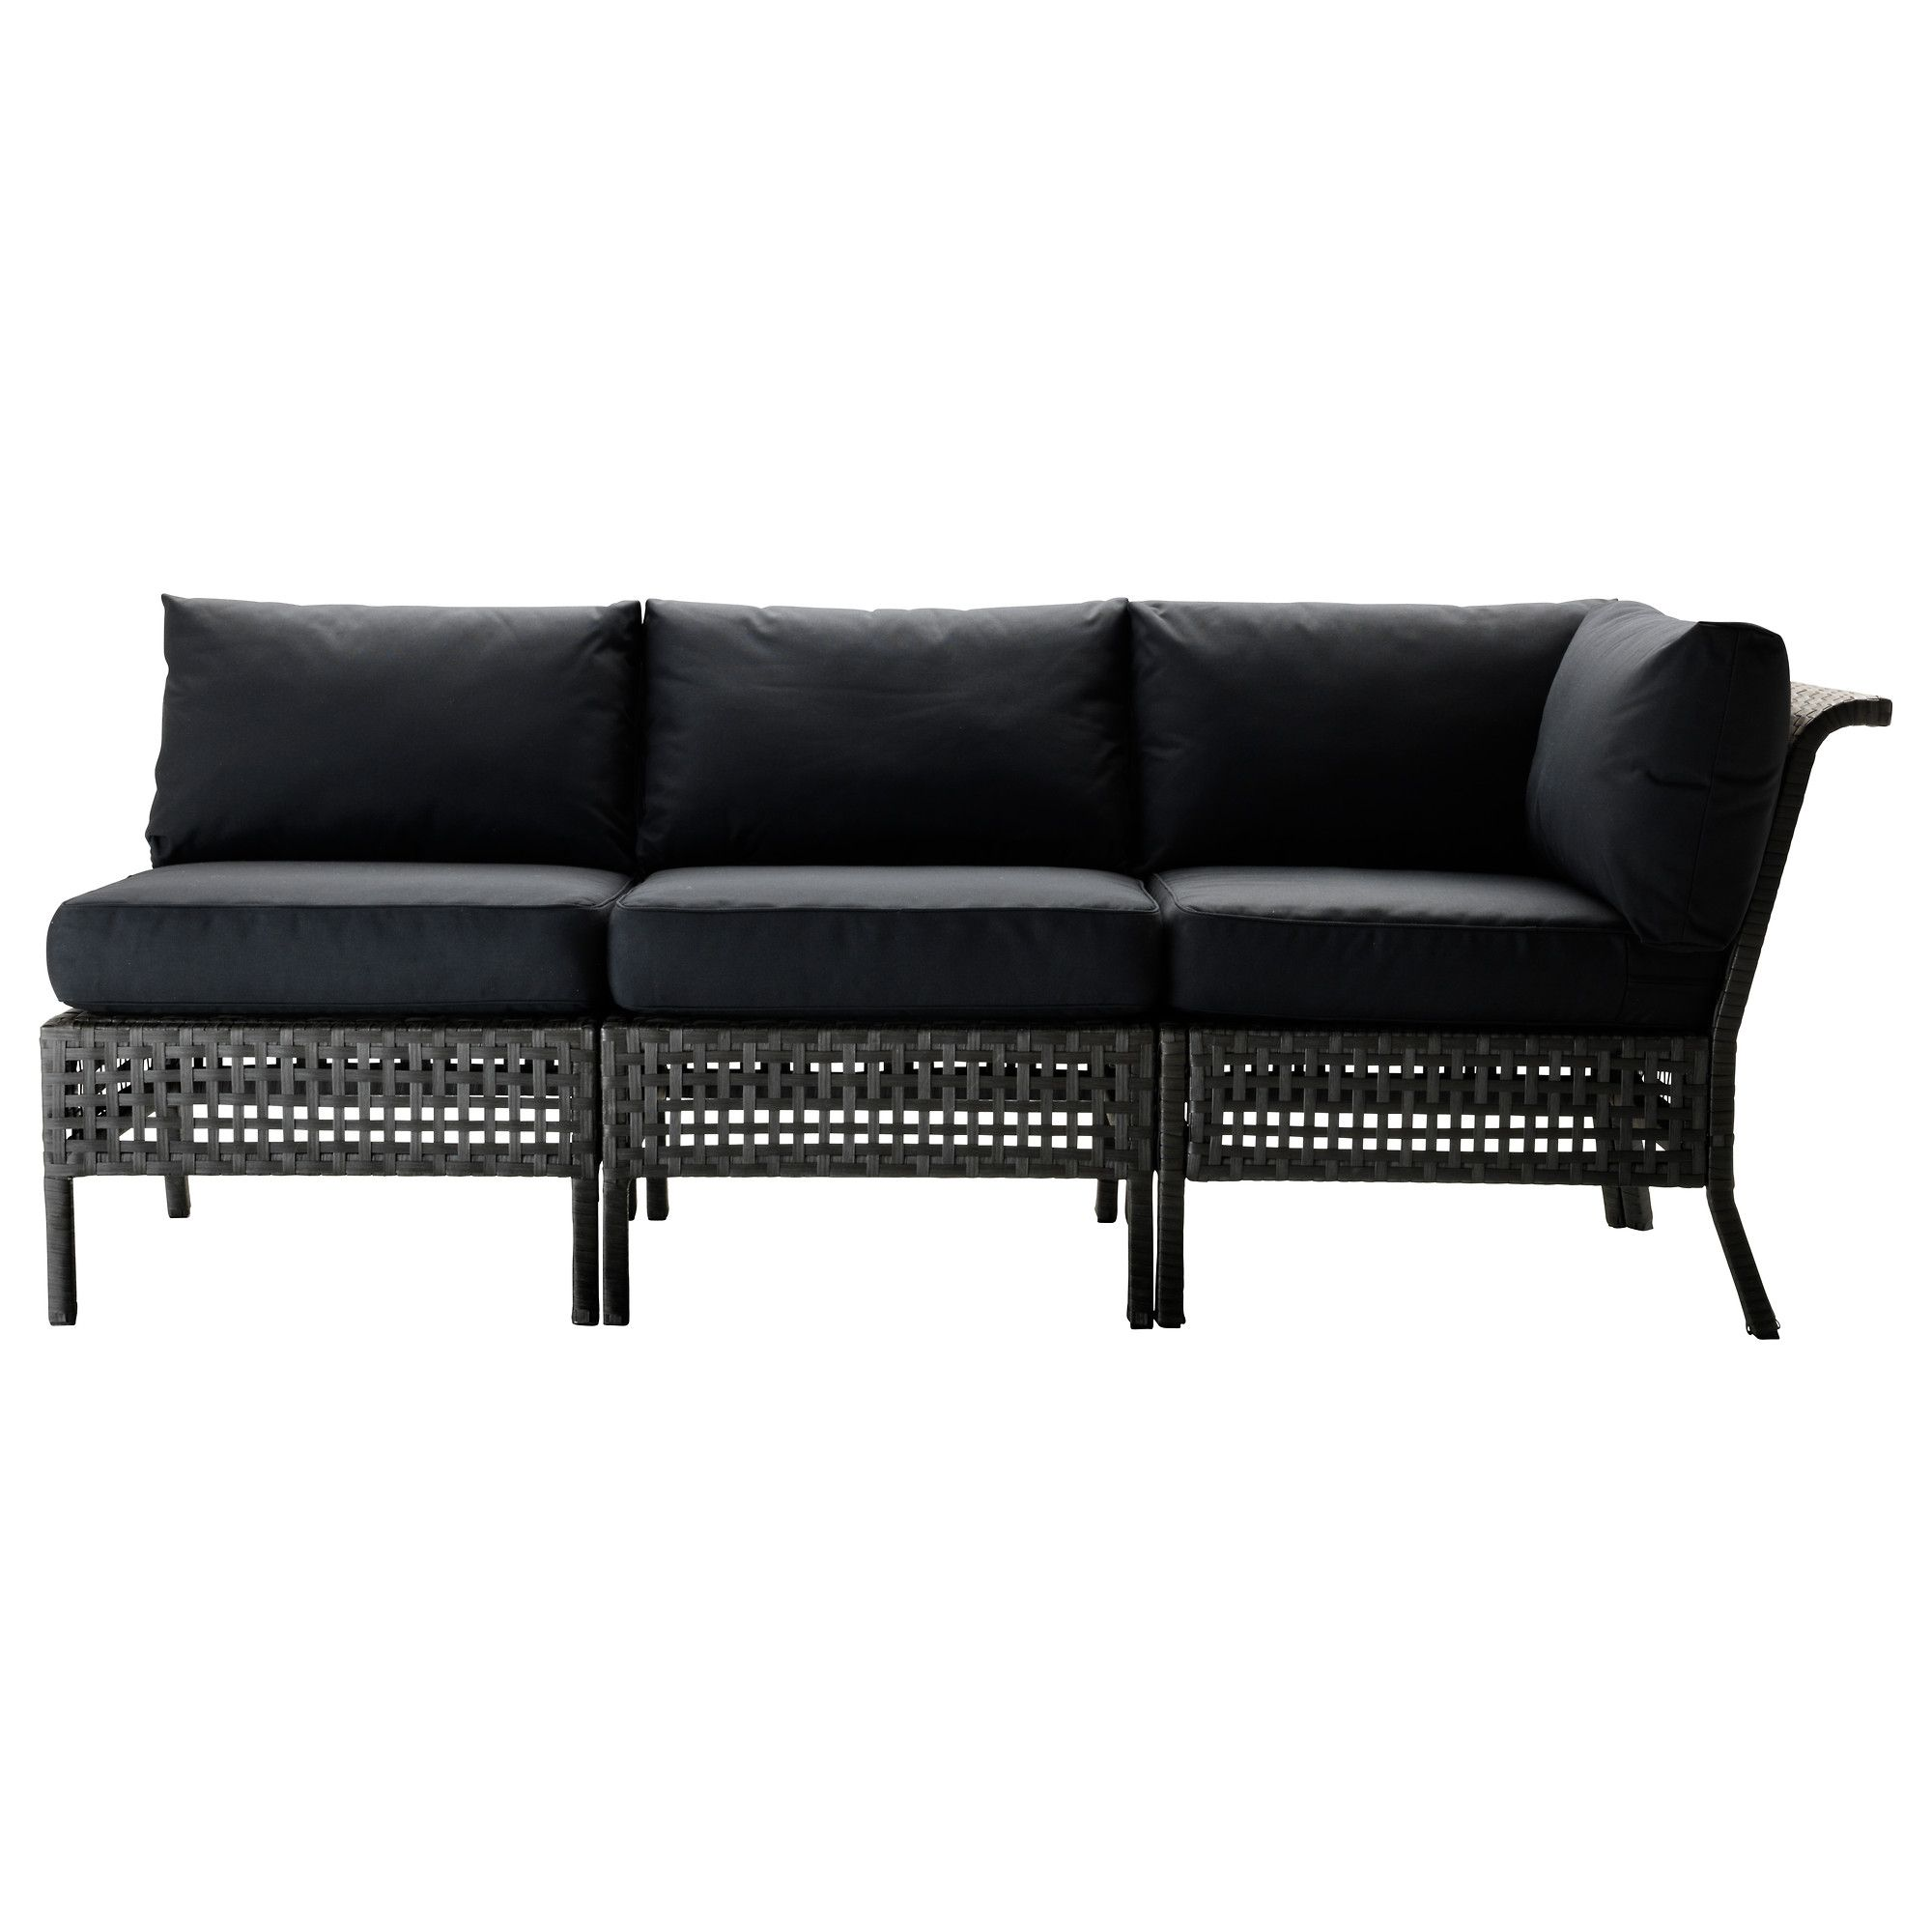 KUNGSHOLMEN KUNGS– Sofa bination IKEA